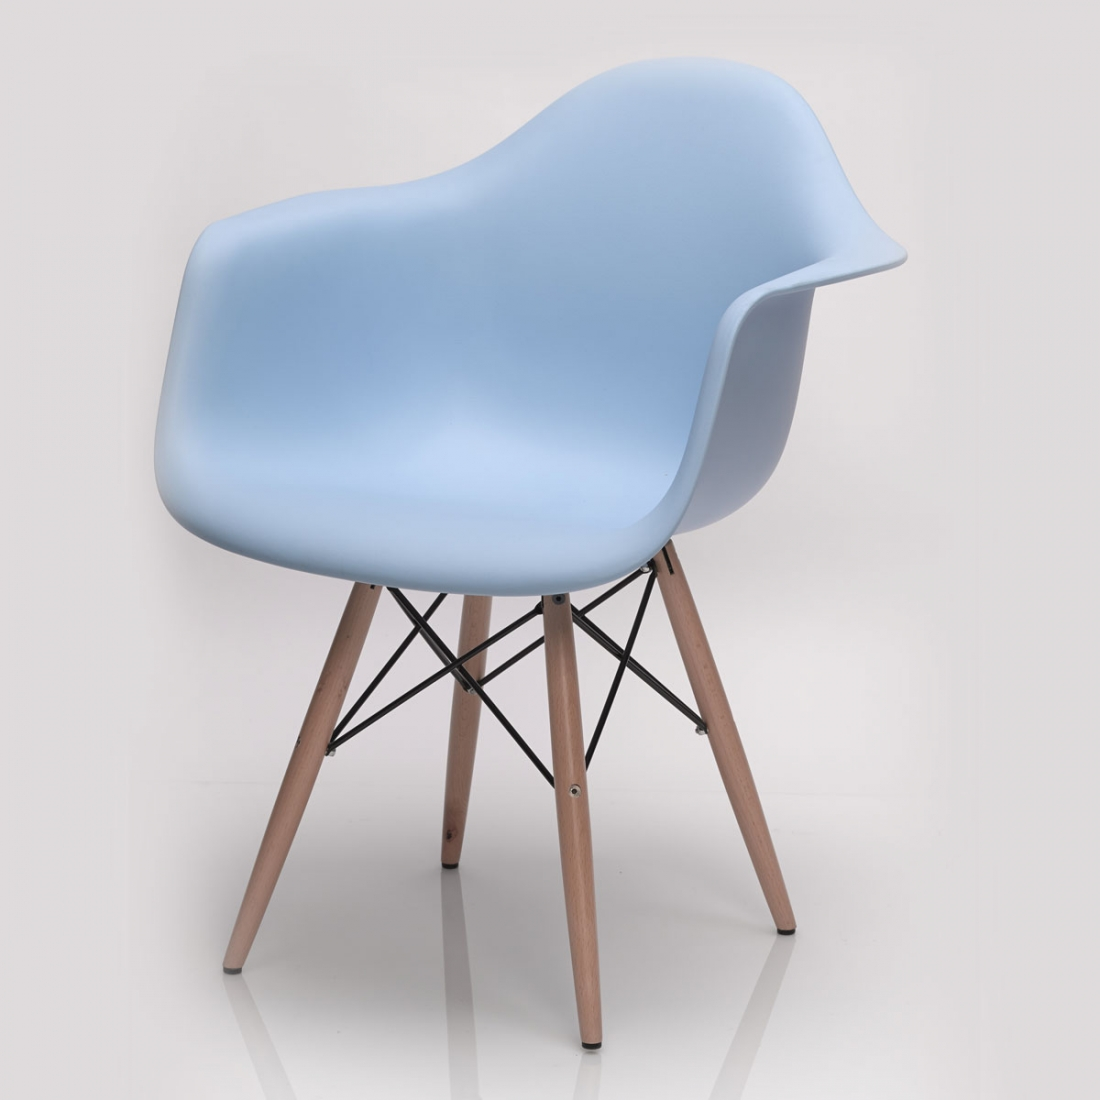 Fauteuil design Moma's